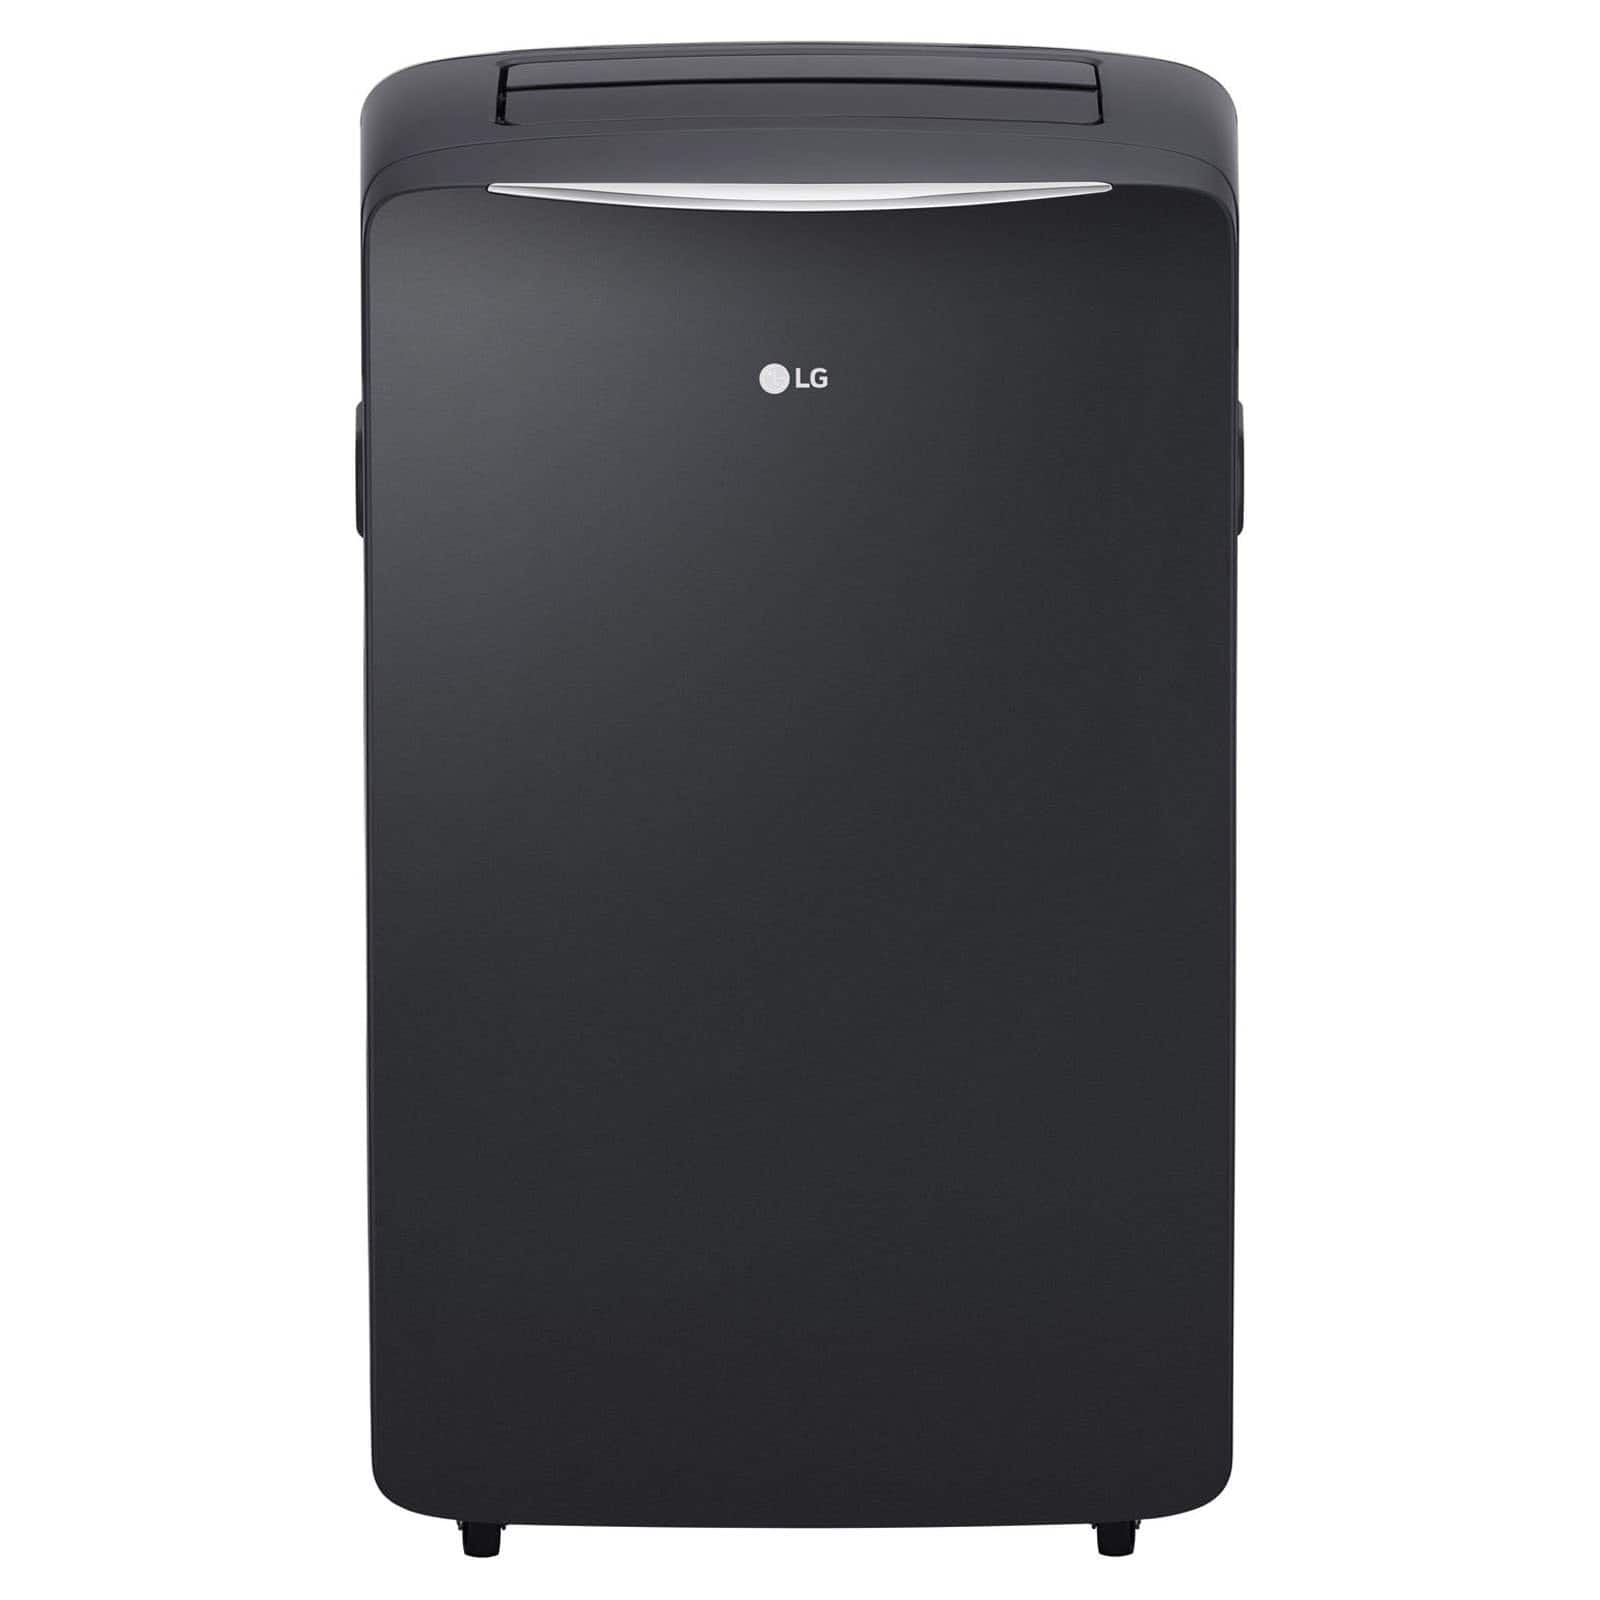 Sam's Club Members: LG 14,000 BTU 115V Portable Air Conditioner with 12,000 BTU Supplemental Heating (Gray) $500 + Shipping